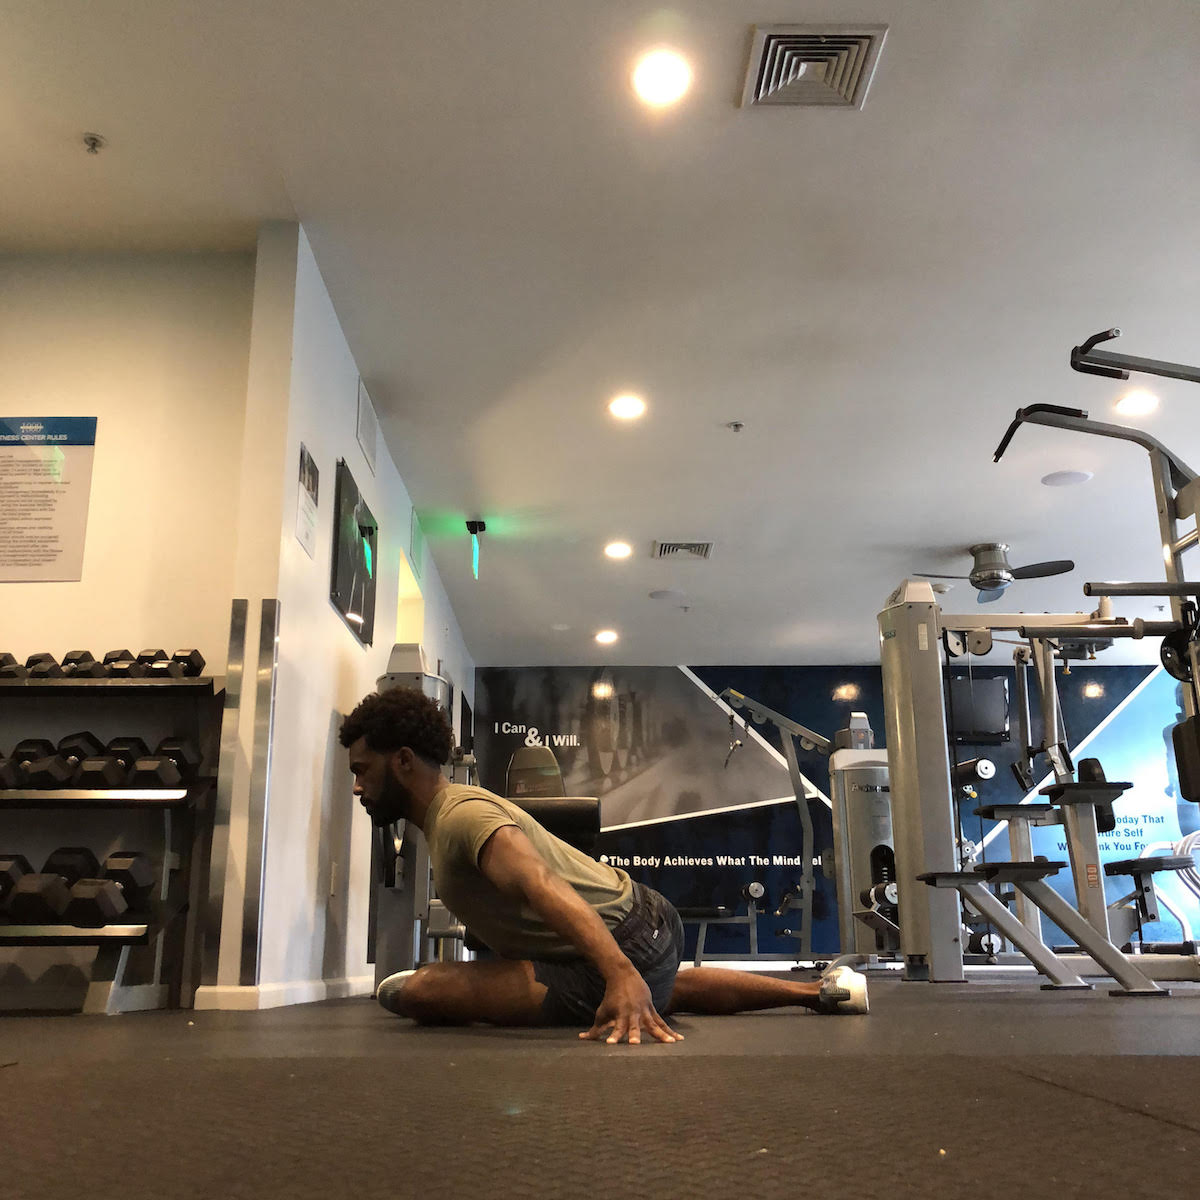 Hip/Back/Knee Issues: Seated 90/90 Position